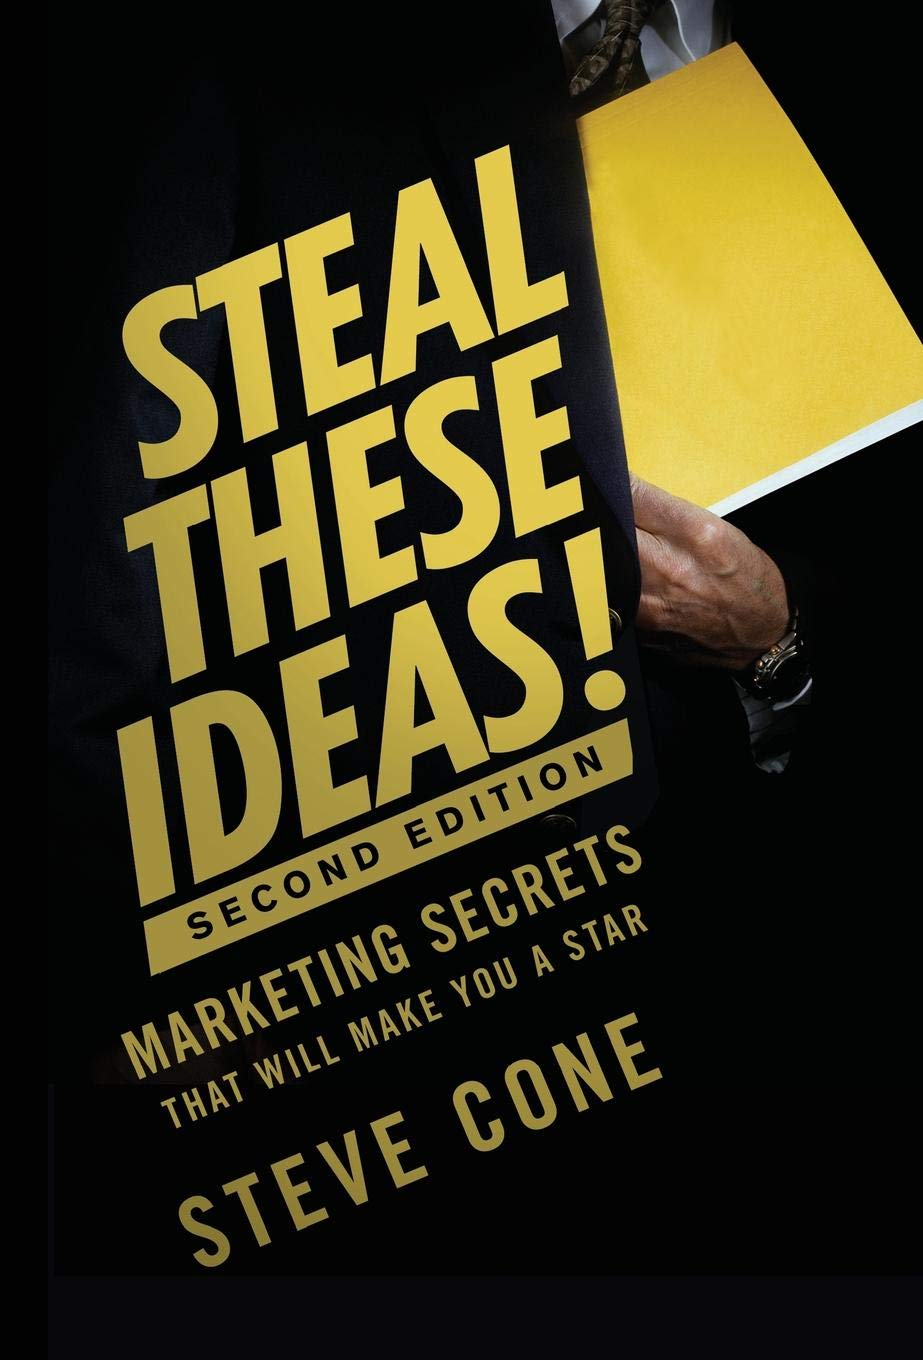 Steal These Ideas!: Marketing Secrets That Will Make You a Star ...